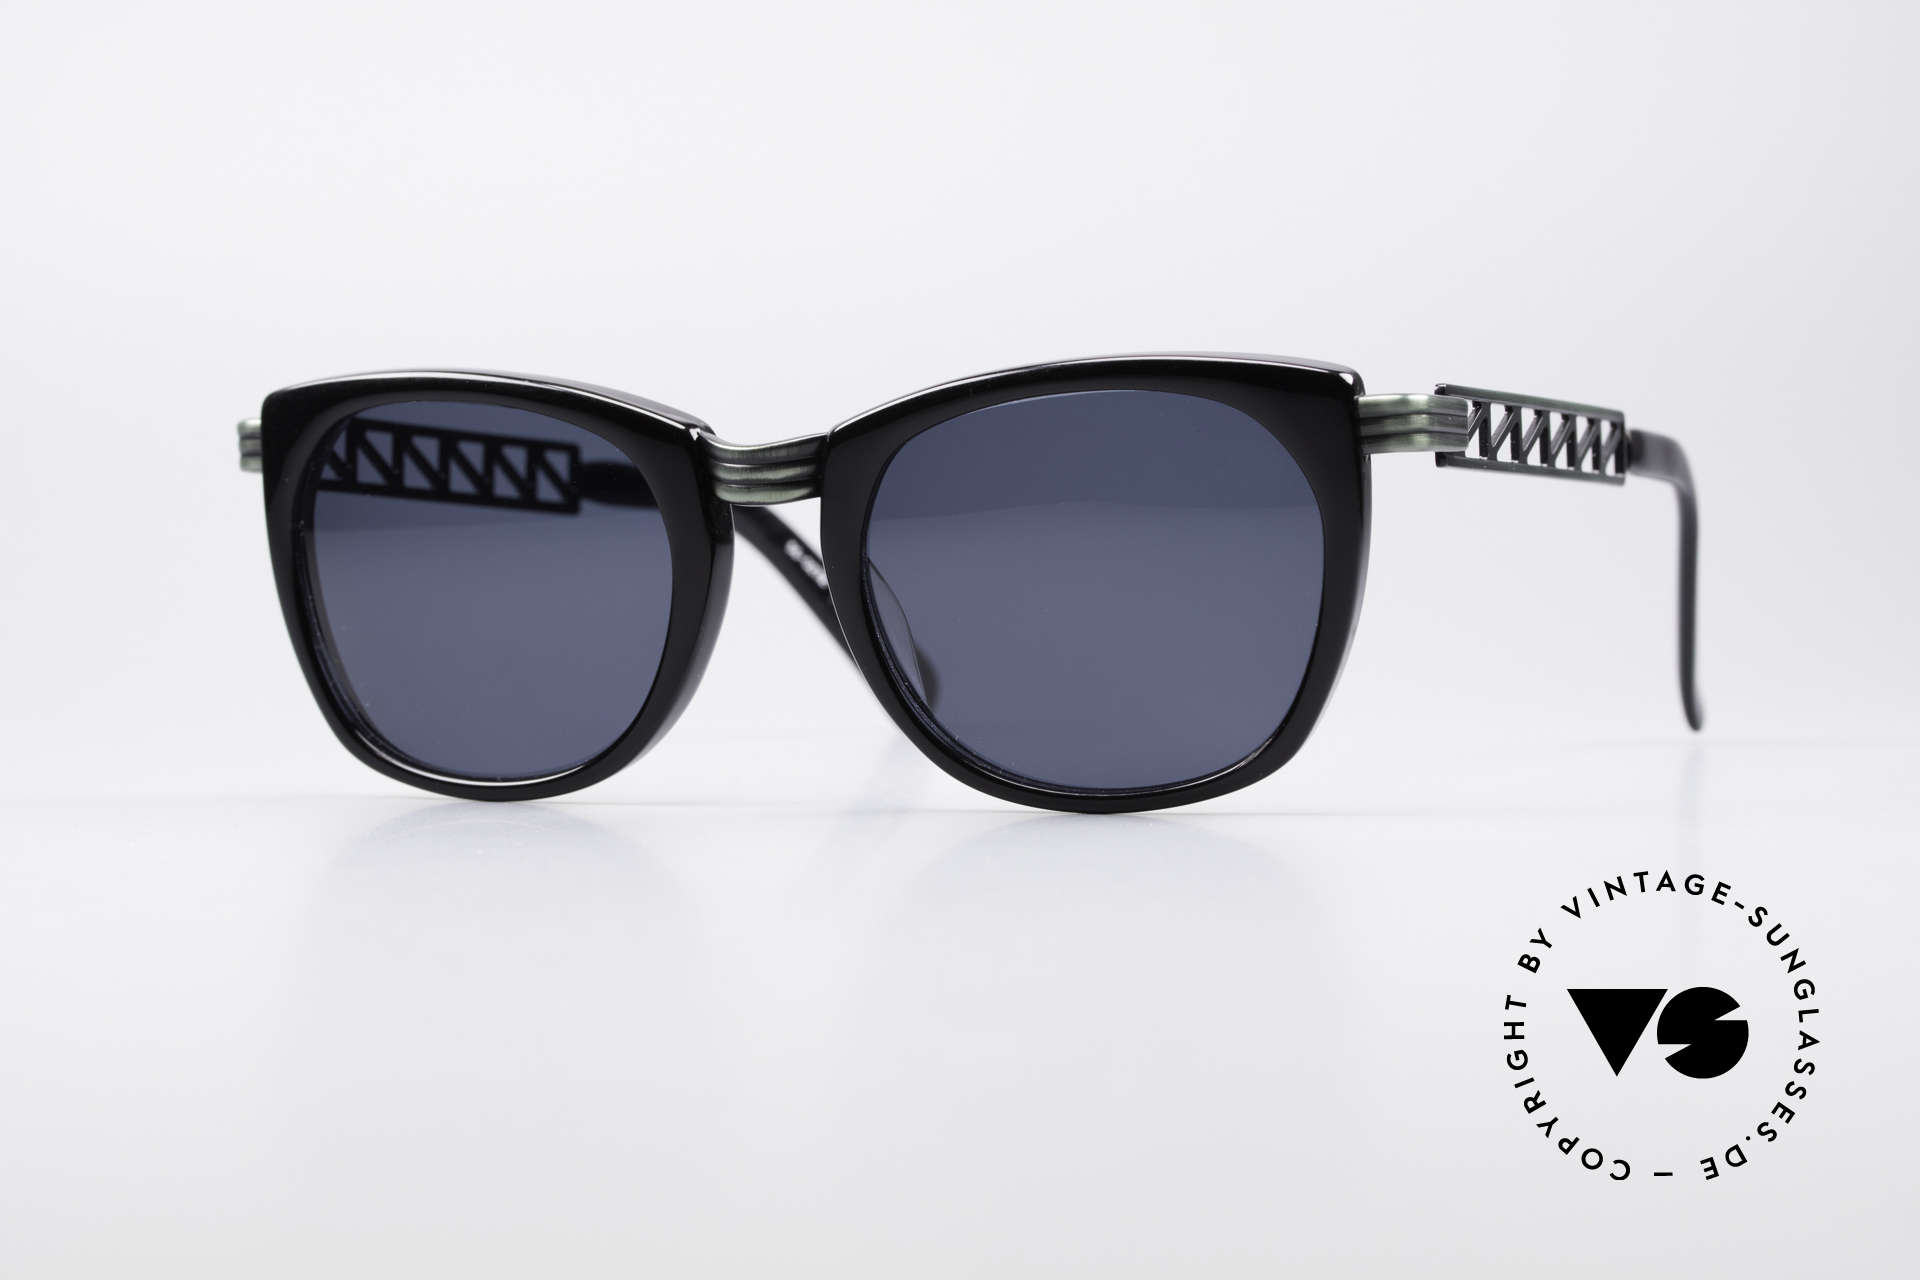 Jean Paul Gaultier 56-0272 Steampunk 90's Sunglasses, vintage designer sunglasses by J.P. GAULTIER, Made for Men and Women